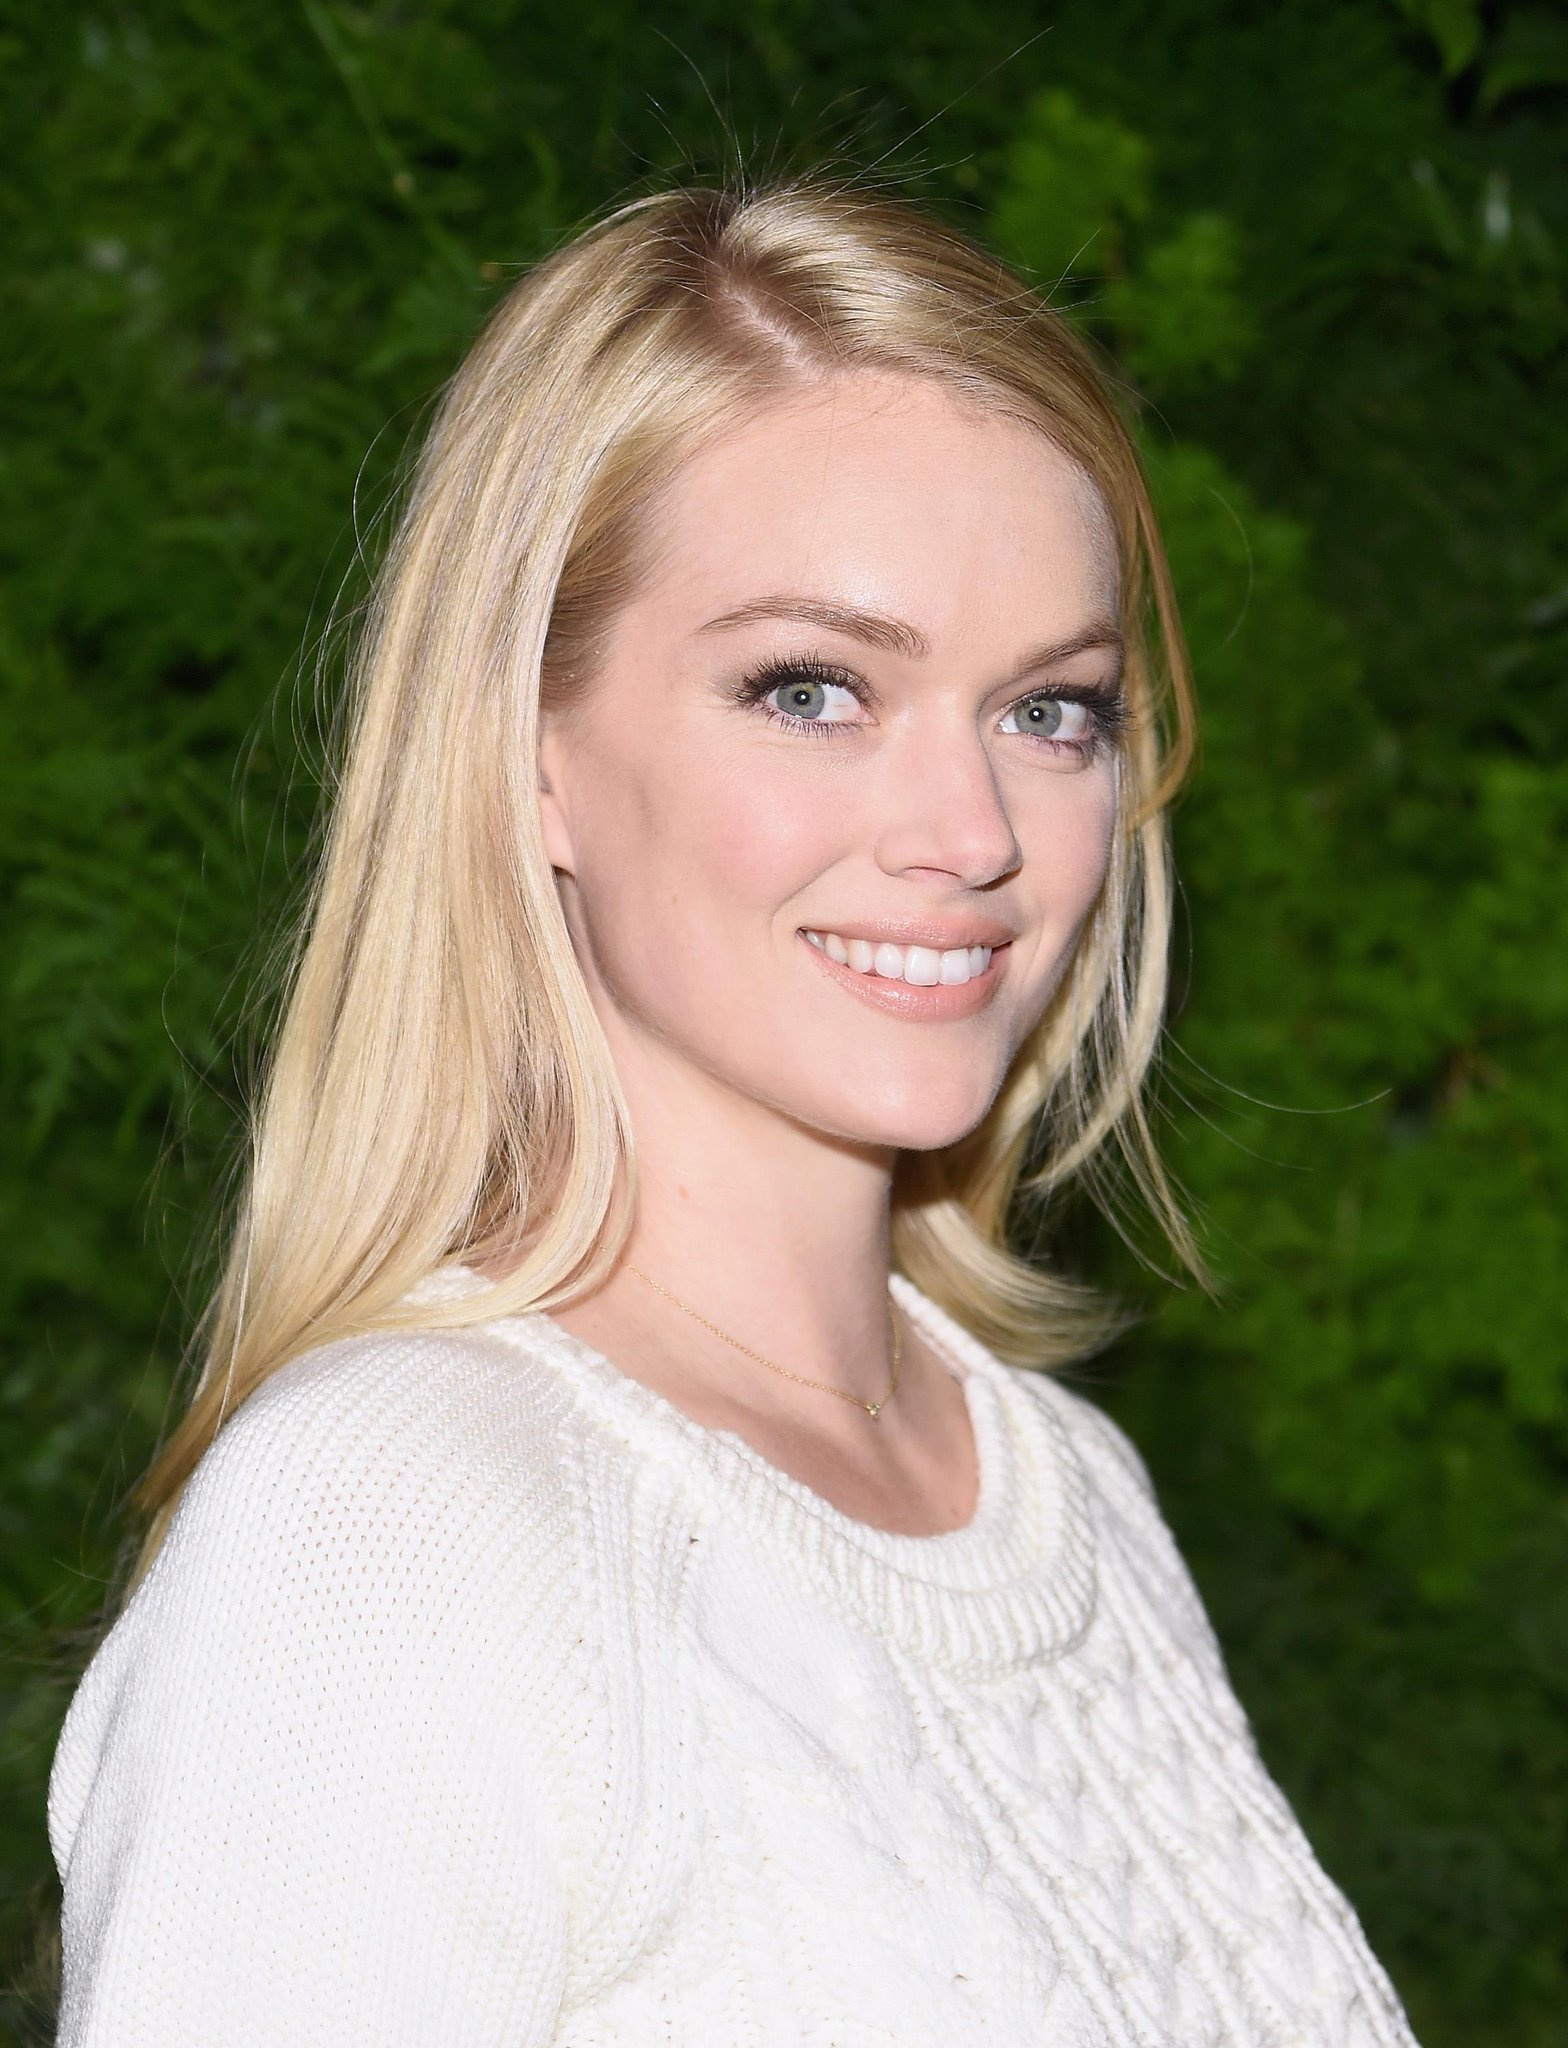 RT @Fashionista_com: .@LindzEllingson, a beauty herself, has launched a beauty line: http://t.co/nZGvRdO9lL http://t.co/6ht6AehPN1